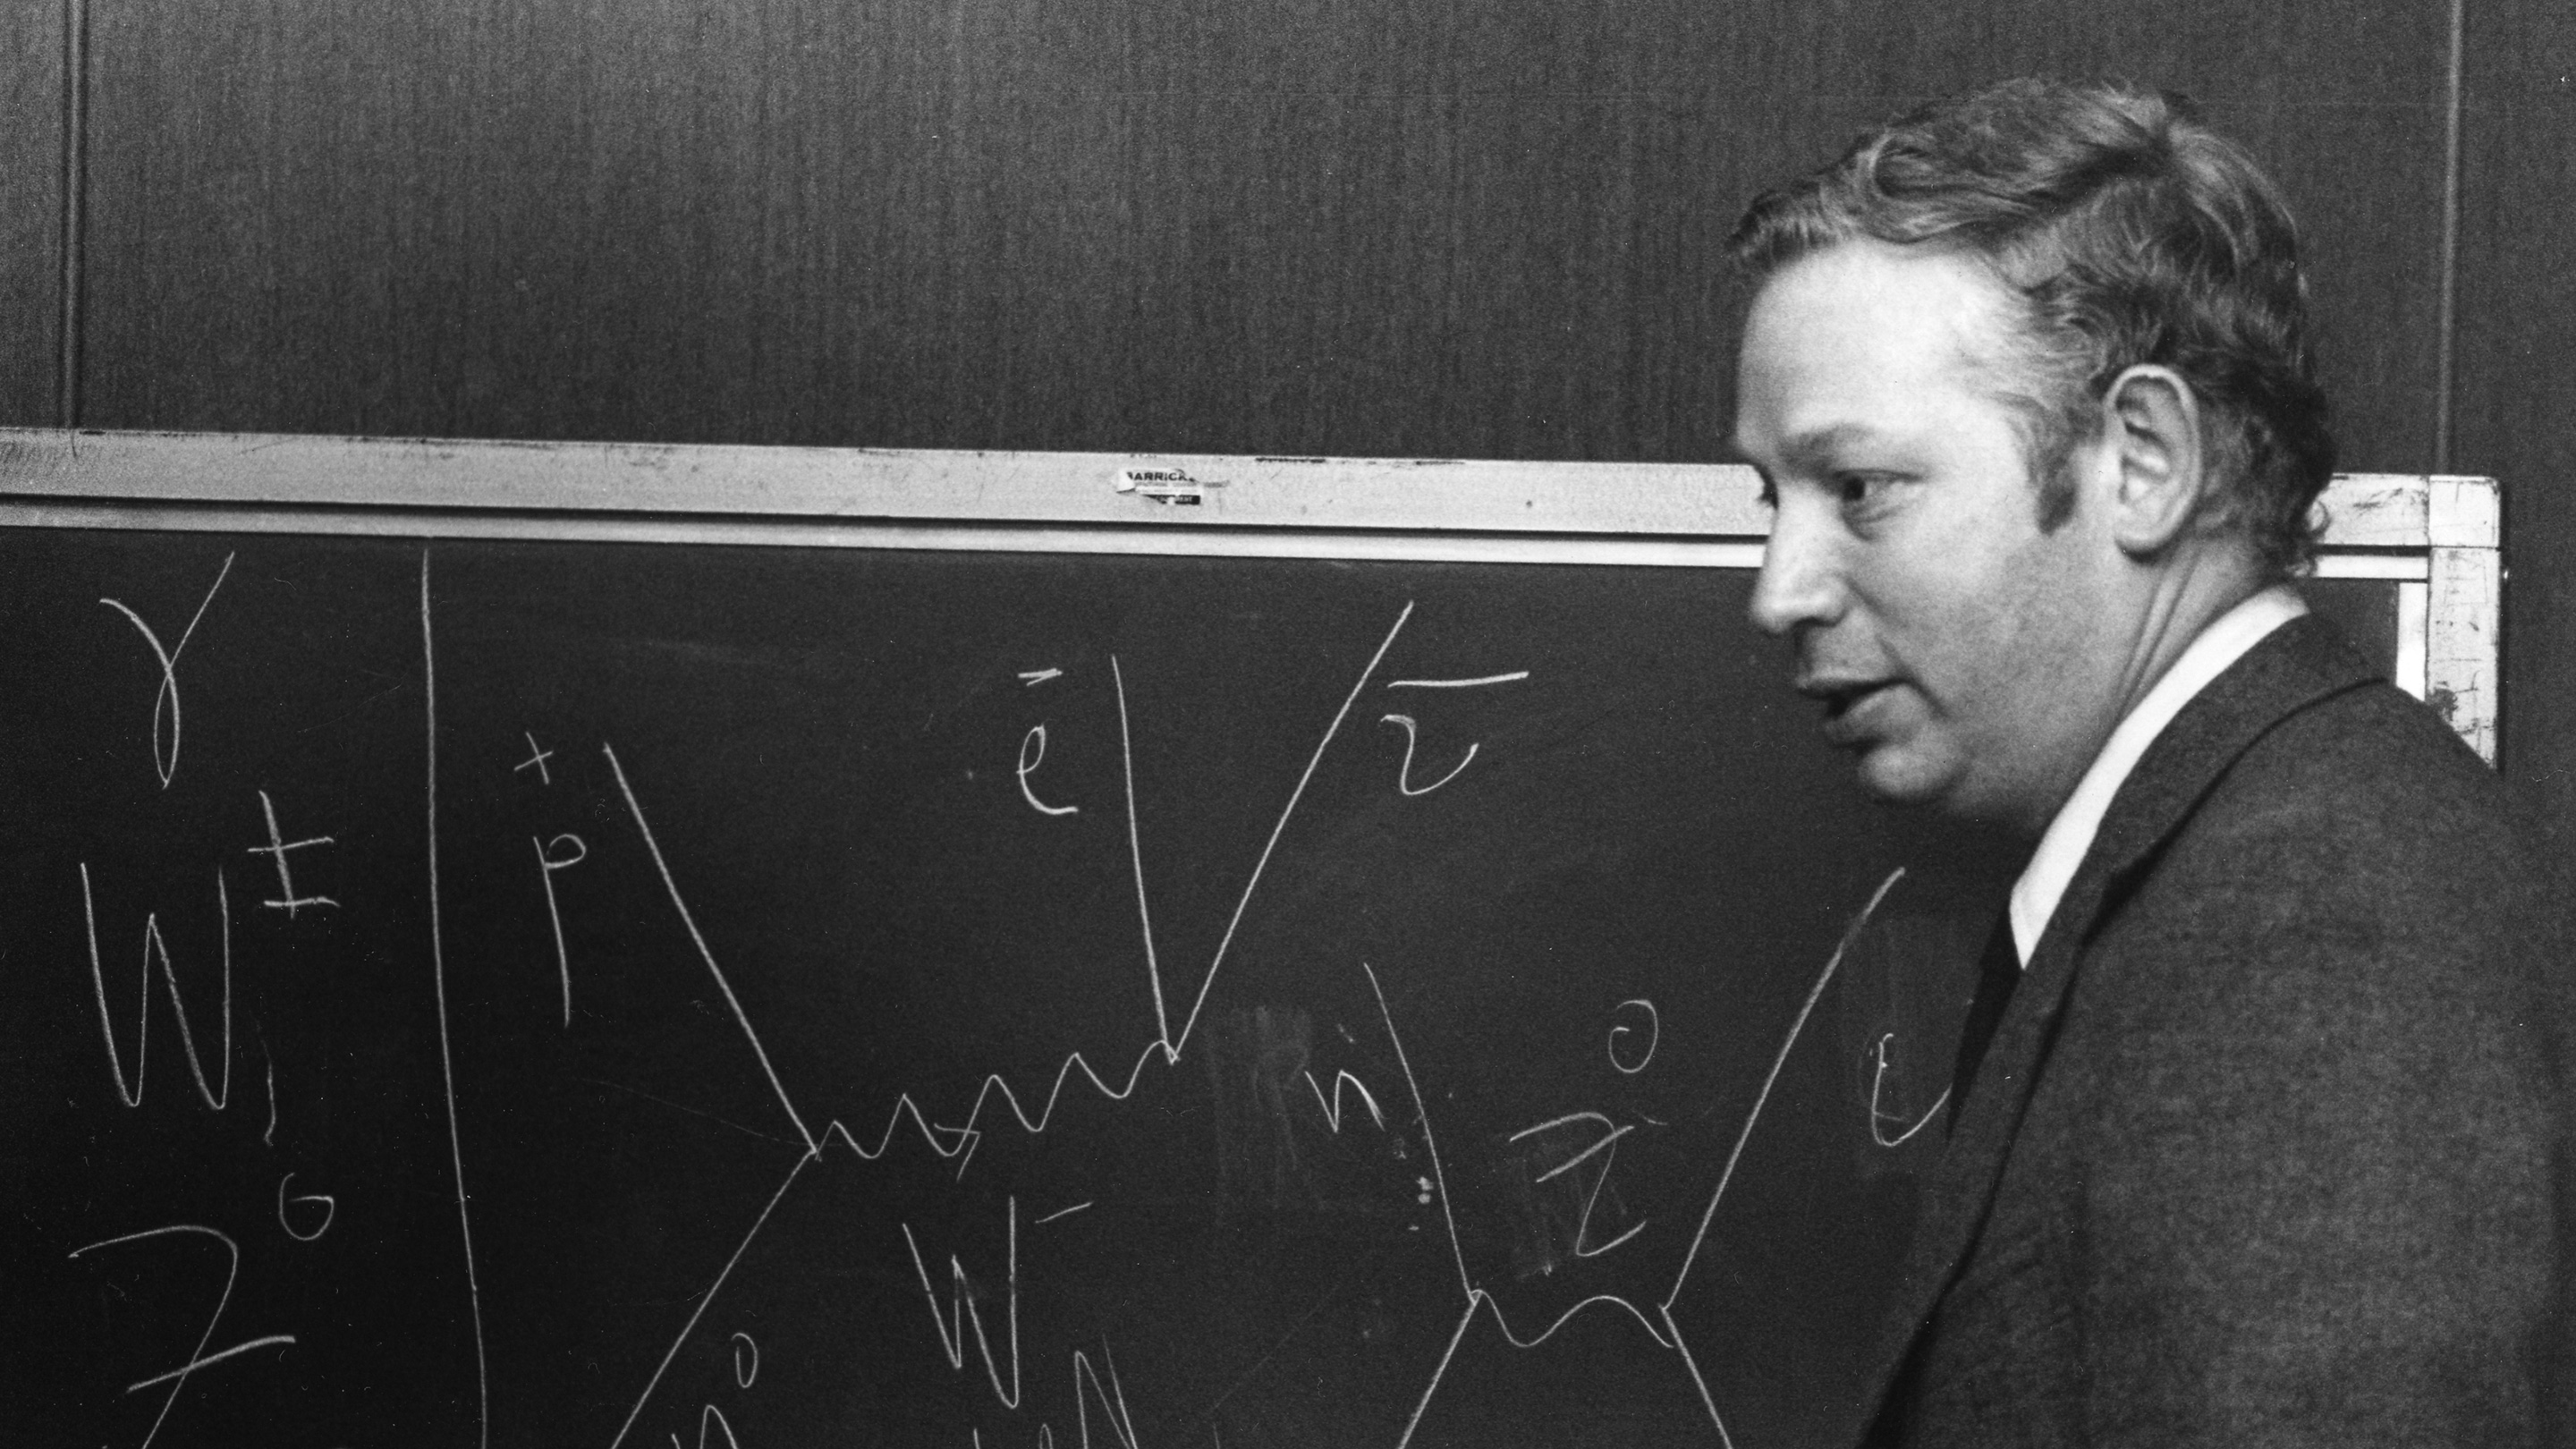 Black and white photo of Steven Weinberg in front of a chalkboard showing particle interactions